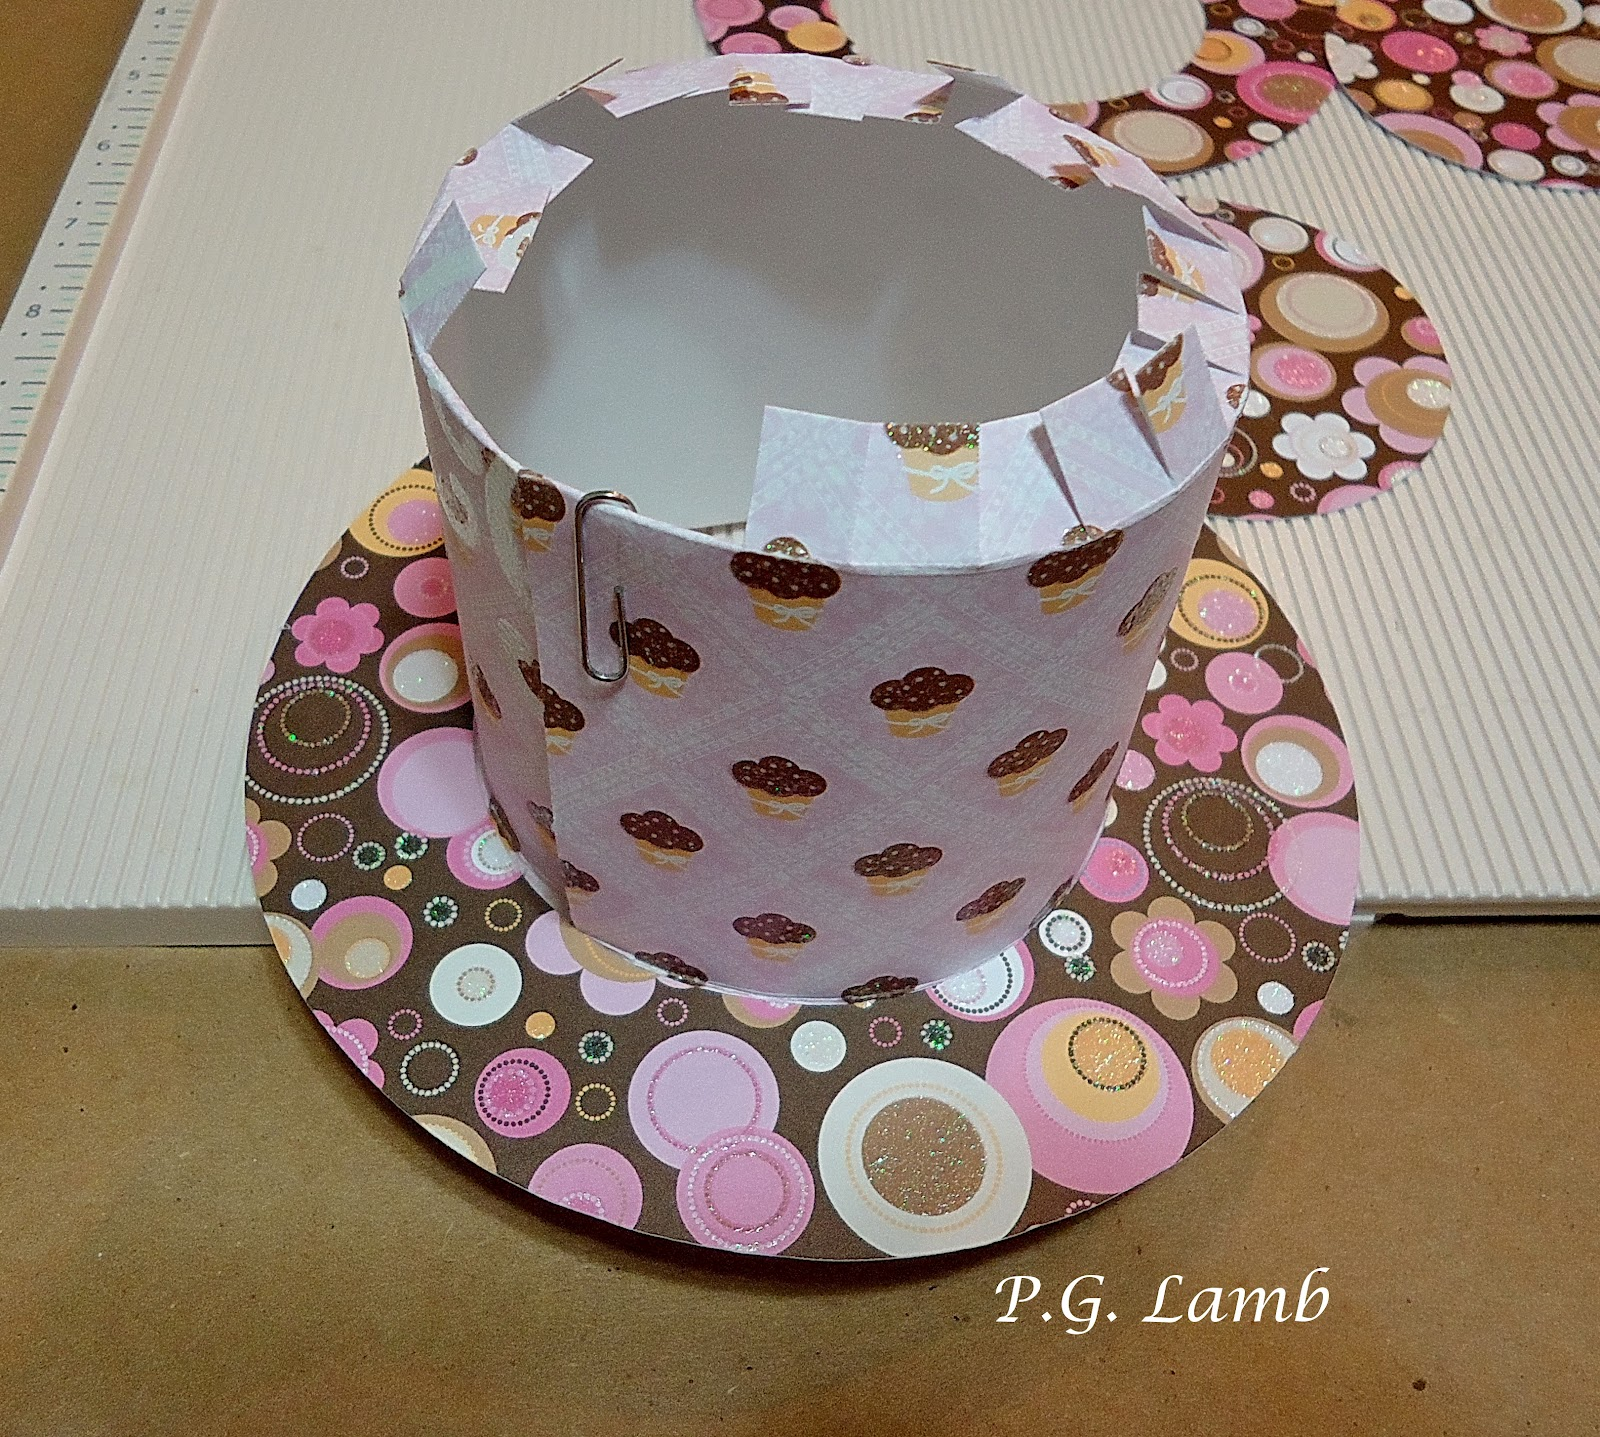 Peachy paper crafts top hat tutorial peachy paper crafts jeuxipadfo Choice Image